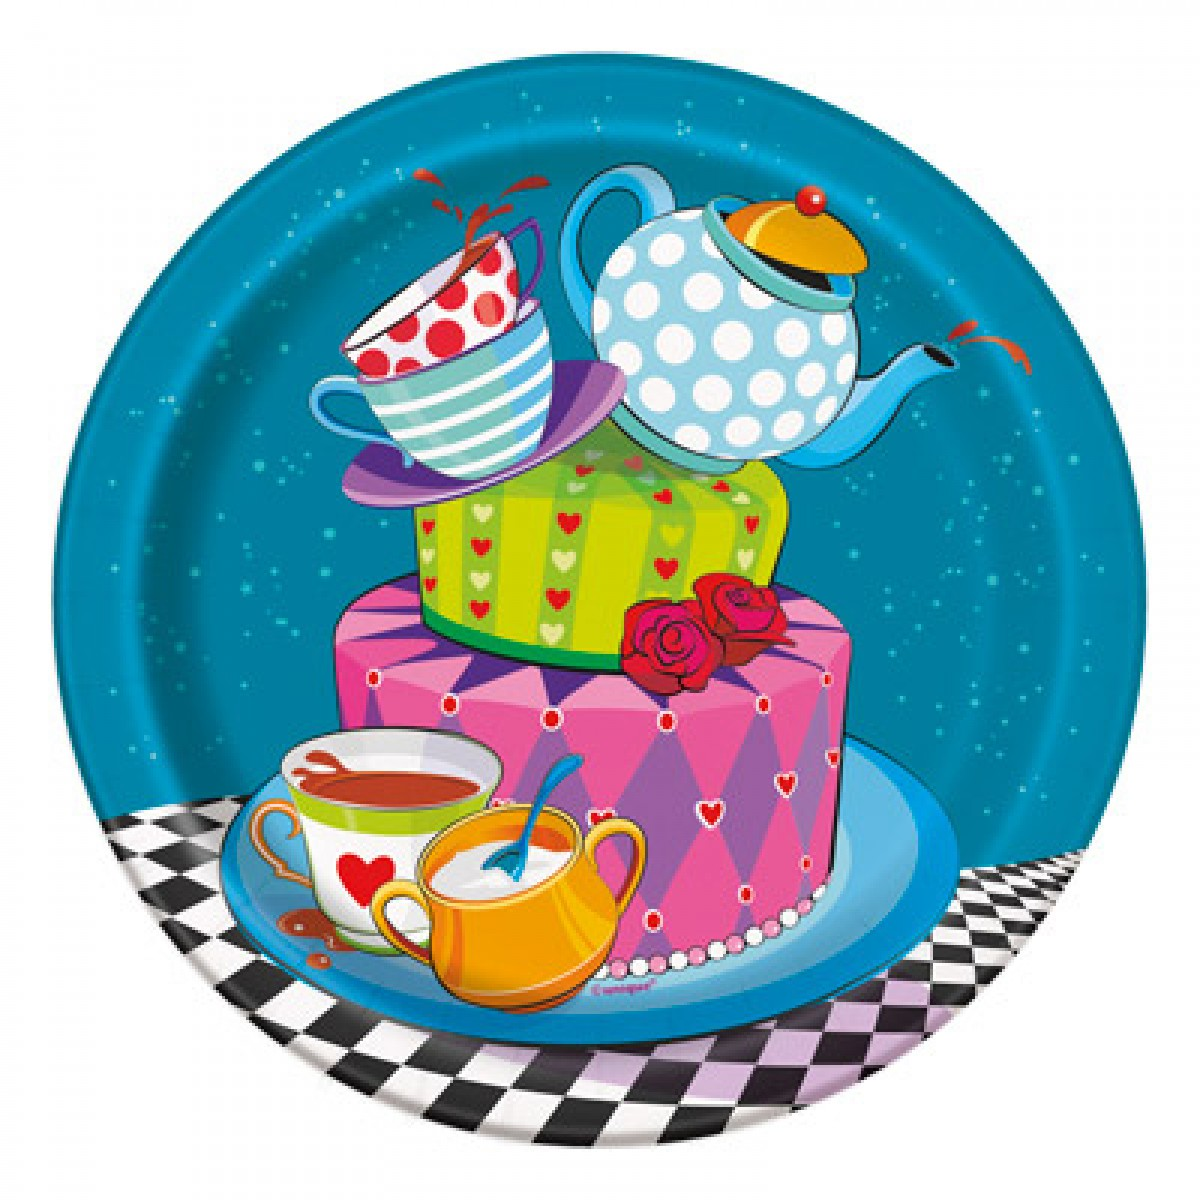 1200x1200 Mad Hatter Tea Party Plates (Alice In Wonderland) Party Dessert